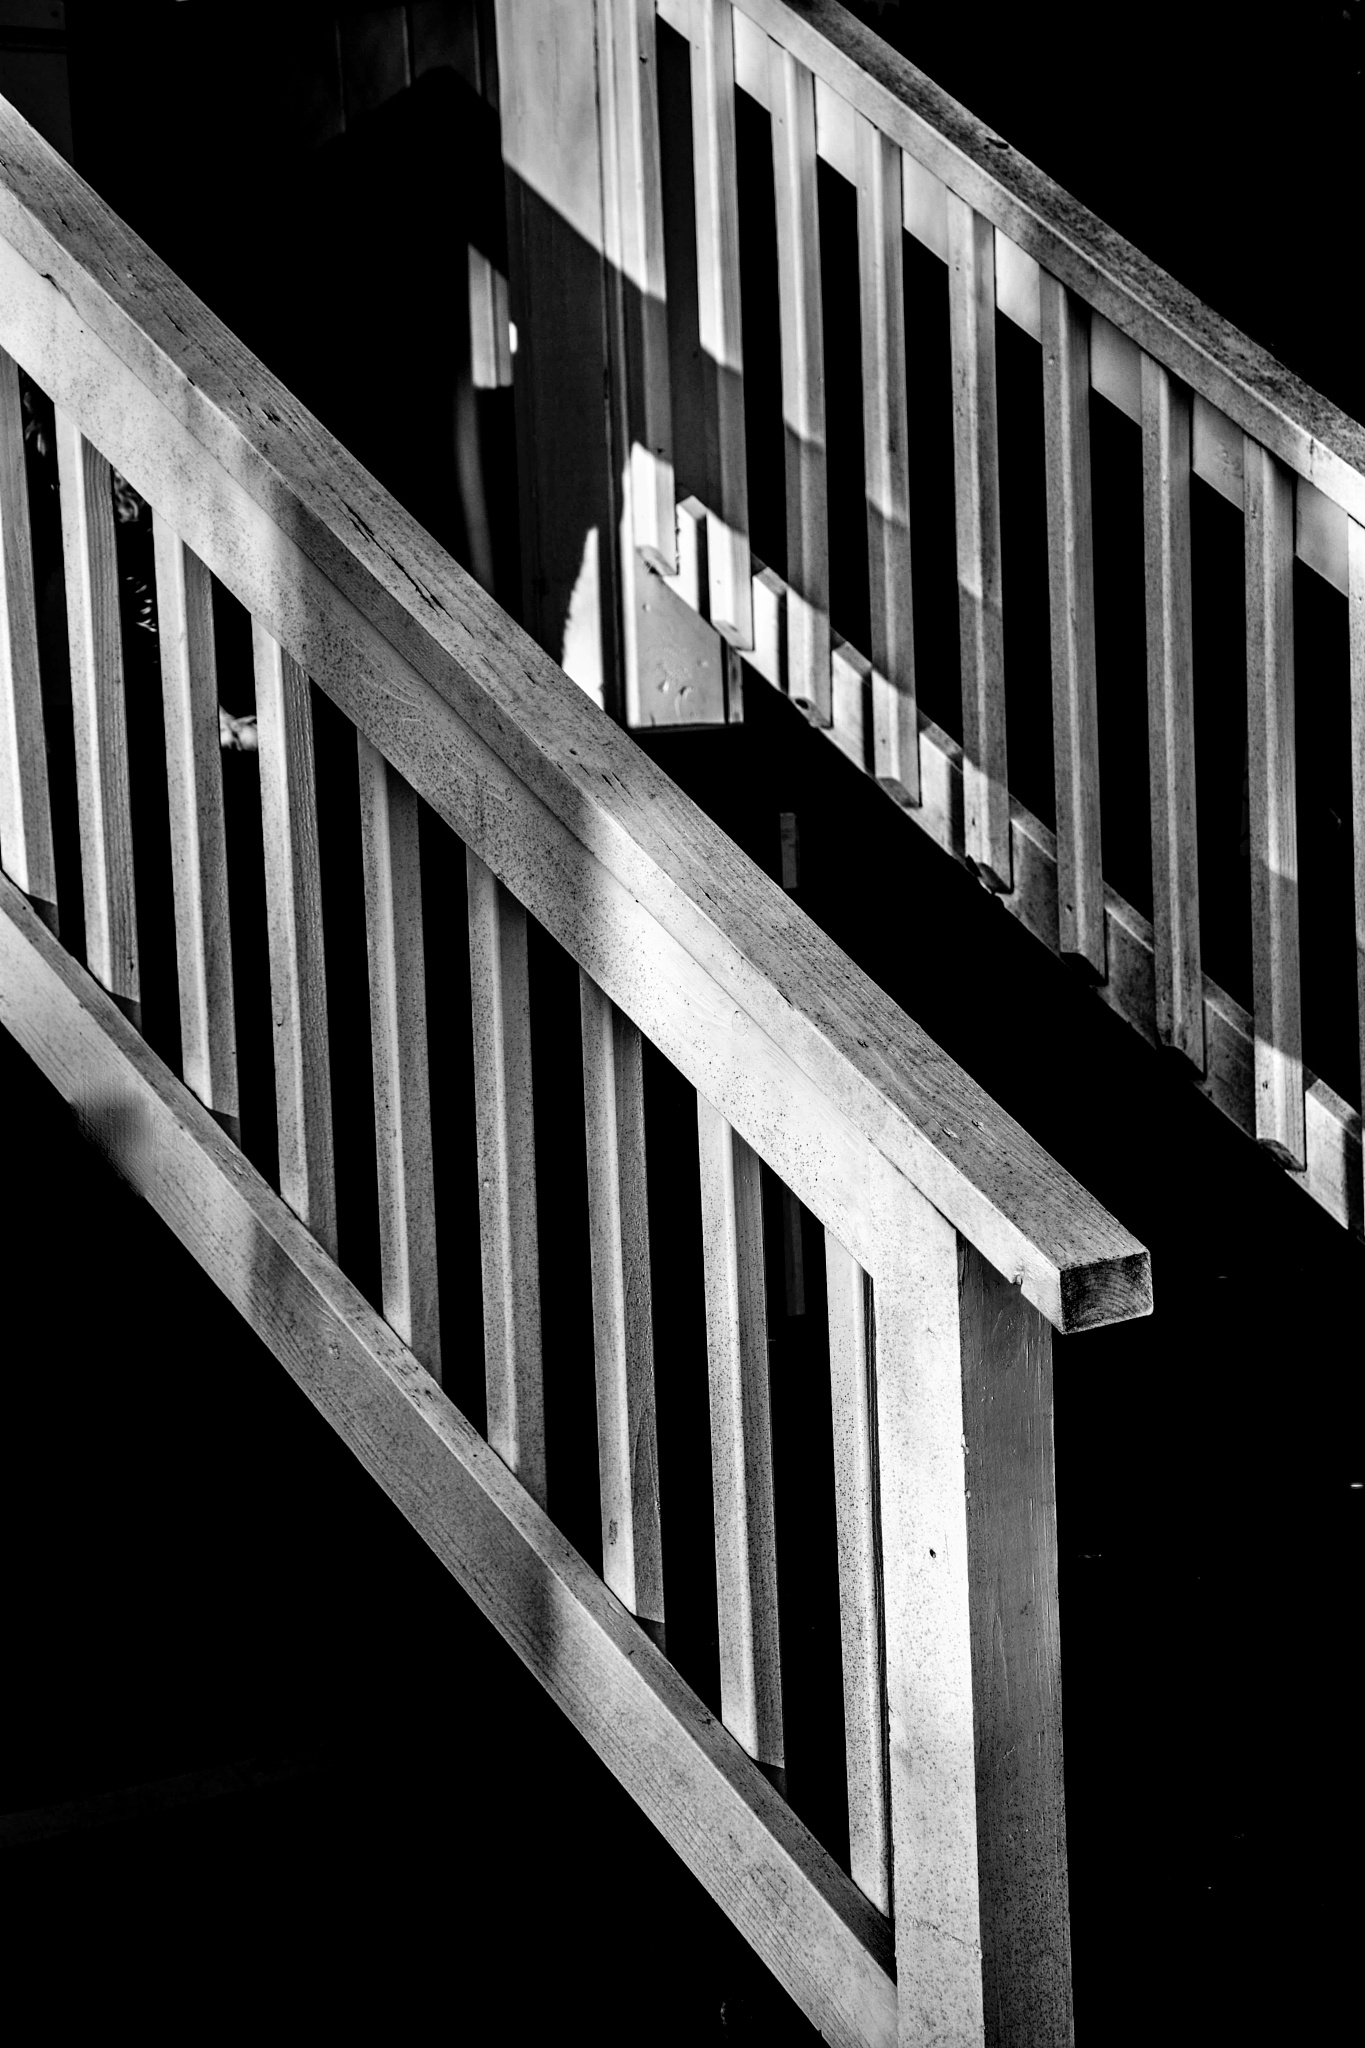 Banisters by danphares